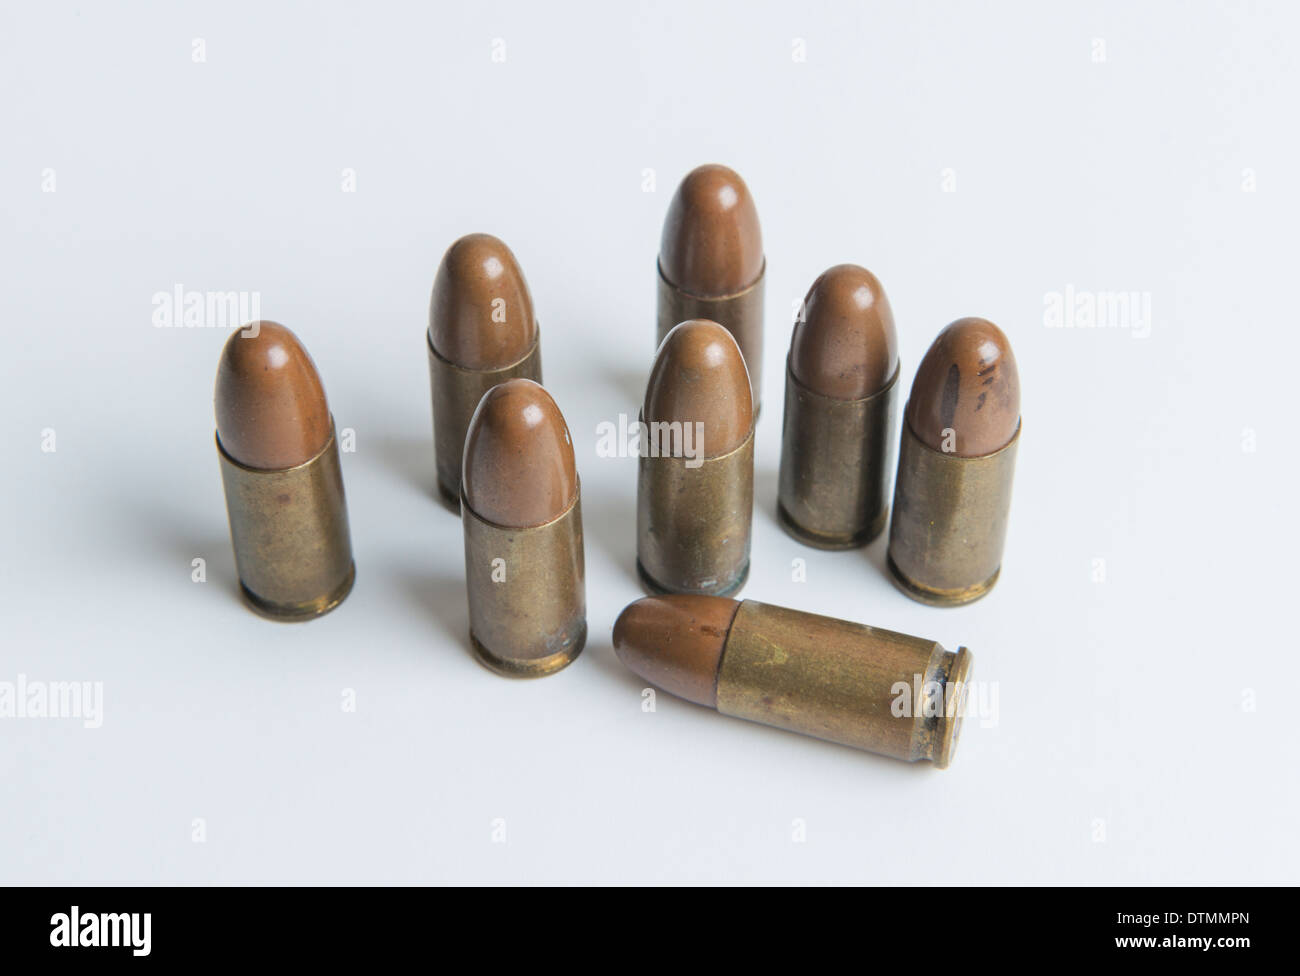 Eight old 9mm bullets from a hand gun. - Stock Image